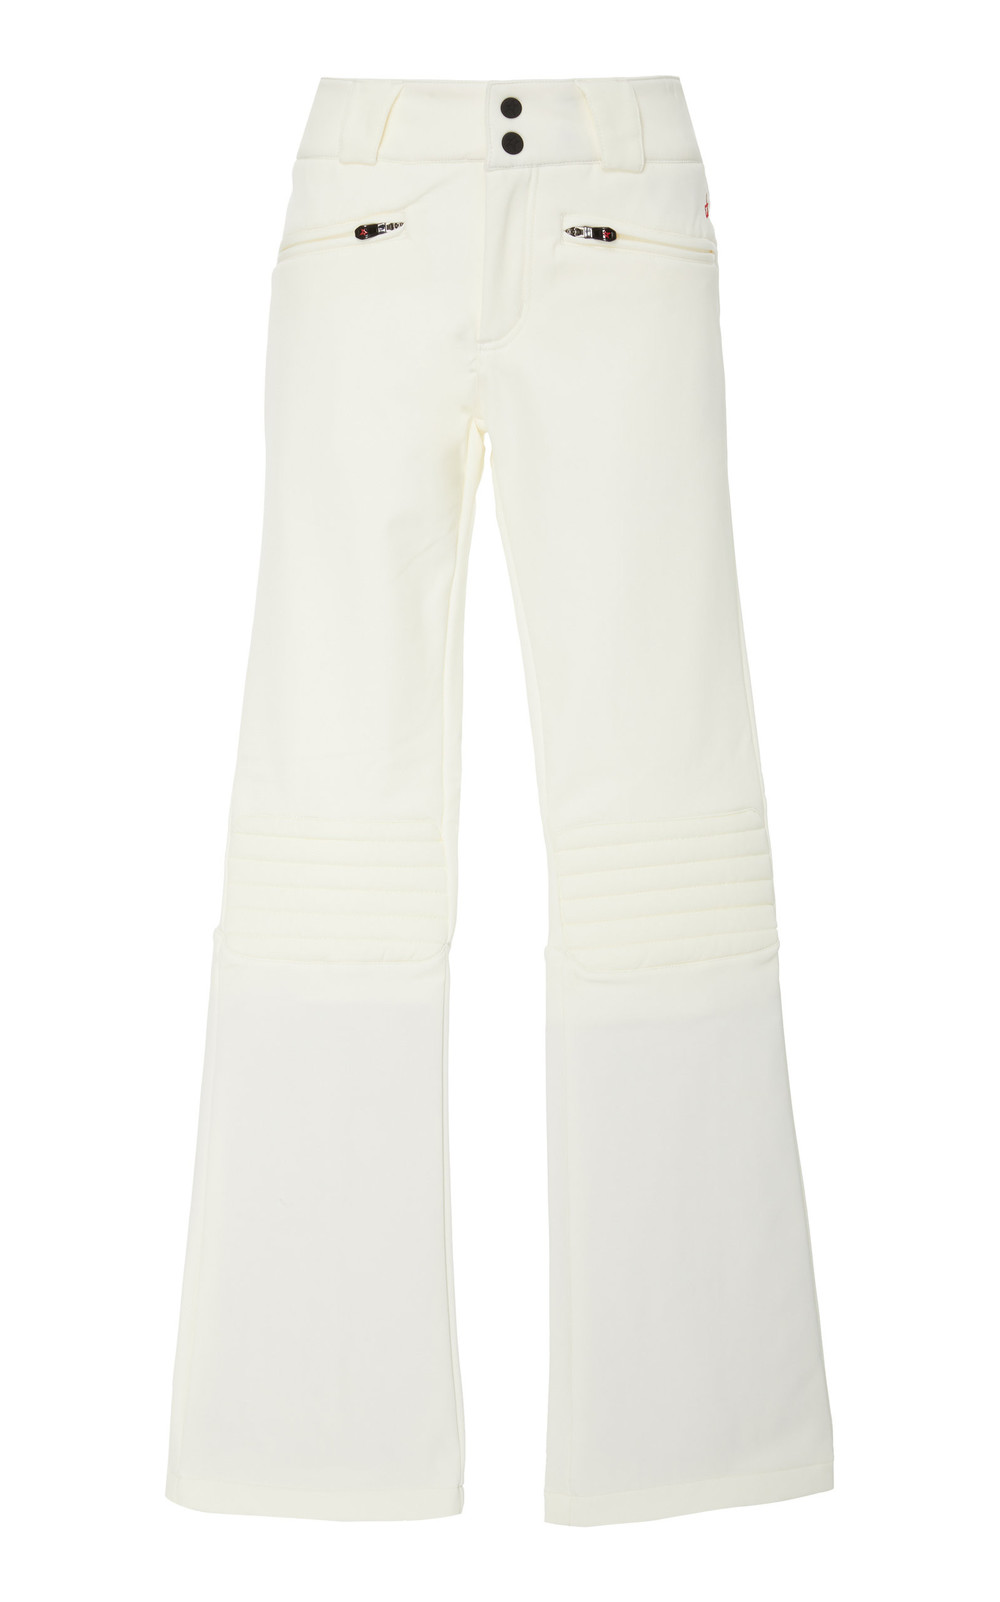 Perfect Moment Aurora Stretch-Jersey Flared Ski Pants in white